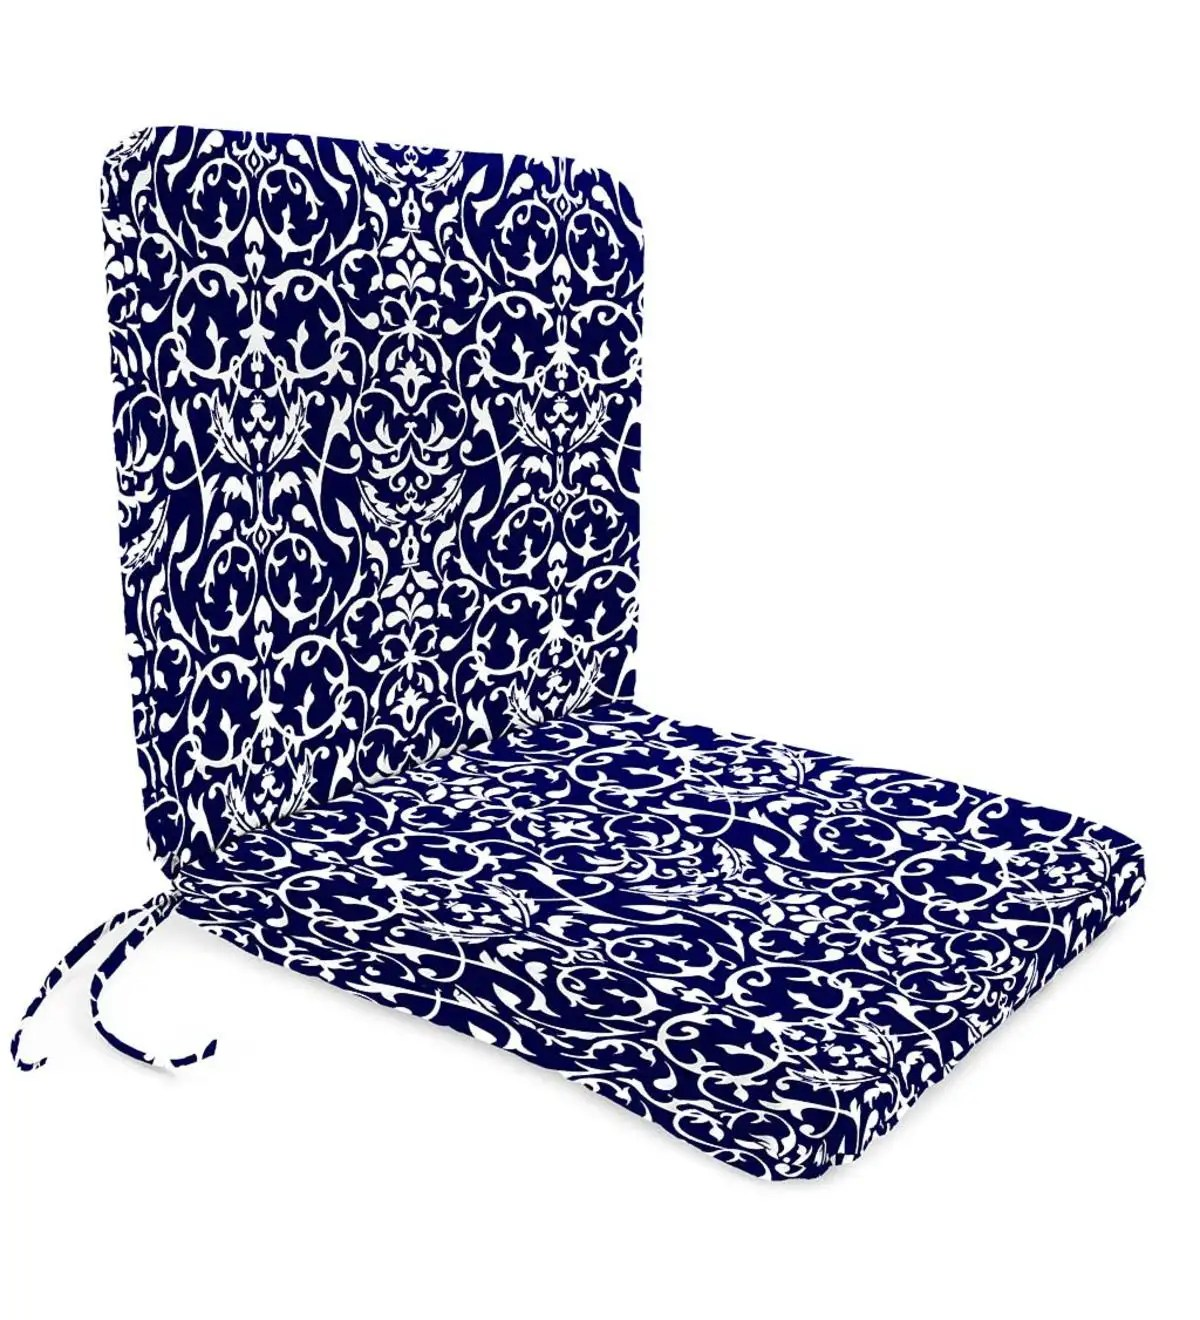 Cushion Sale Sale Polyester Classic Chair Cushion With Ties Seat 19 Quotx